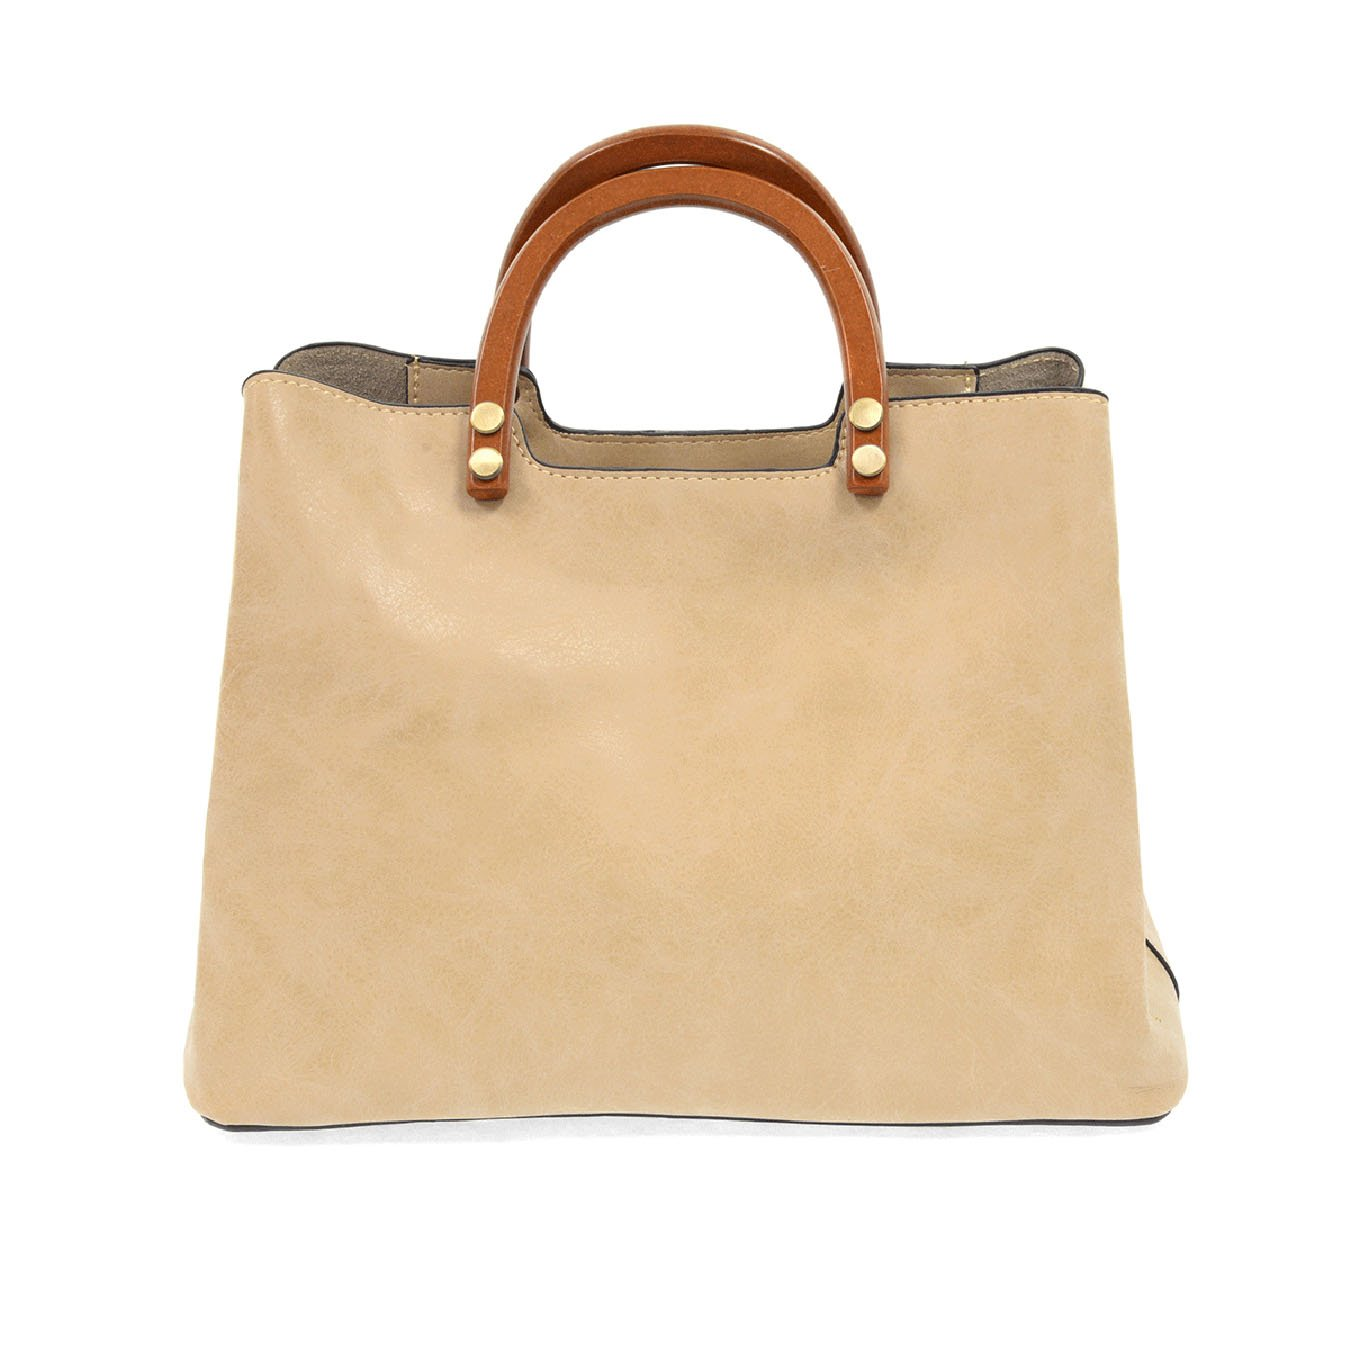 Oat Angie Vintage Satchel with Wood Handles